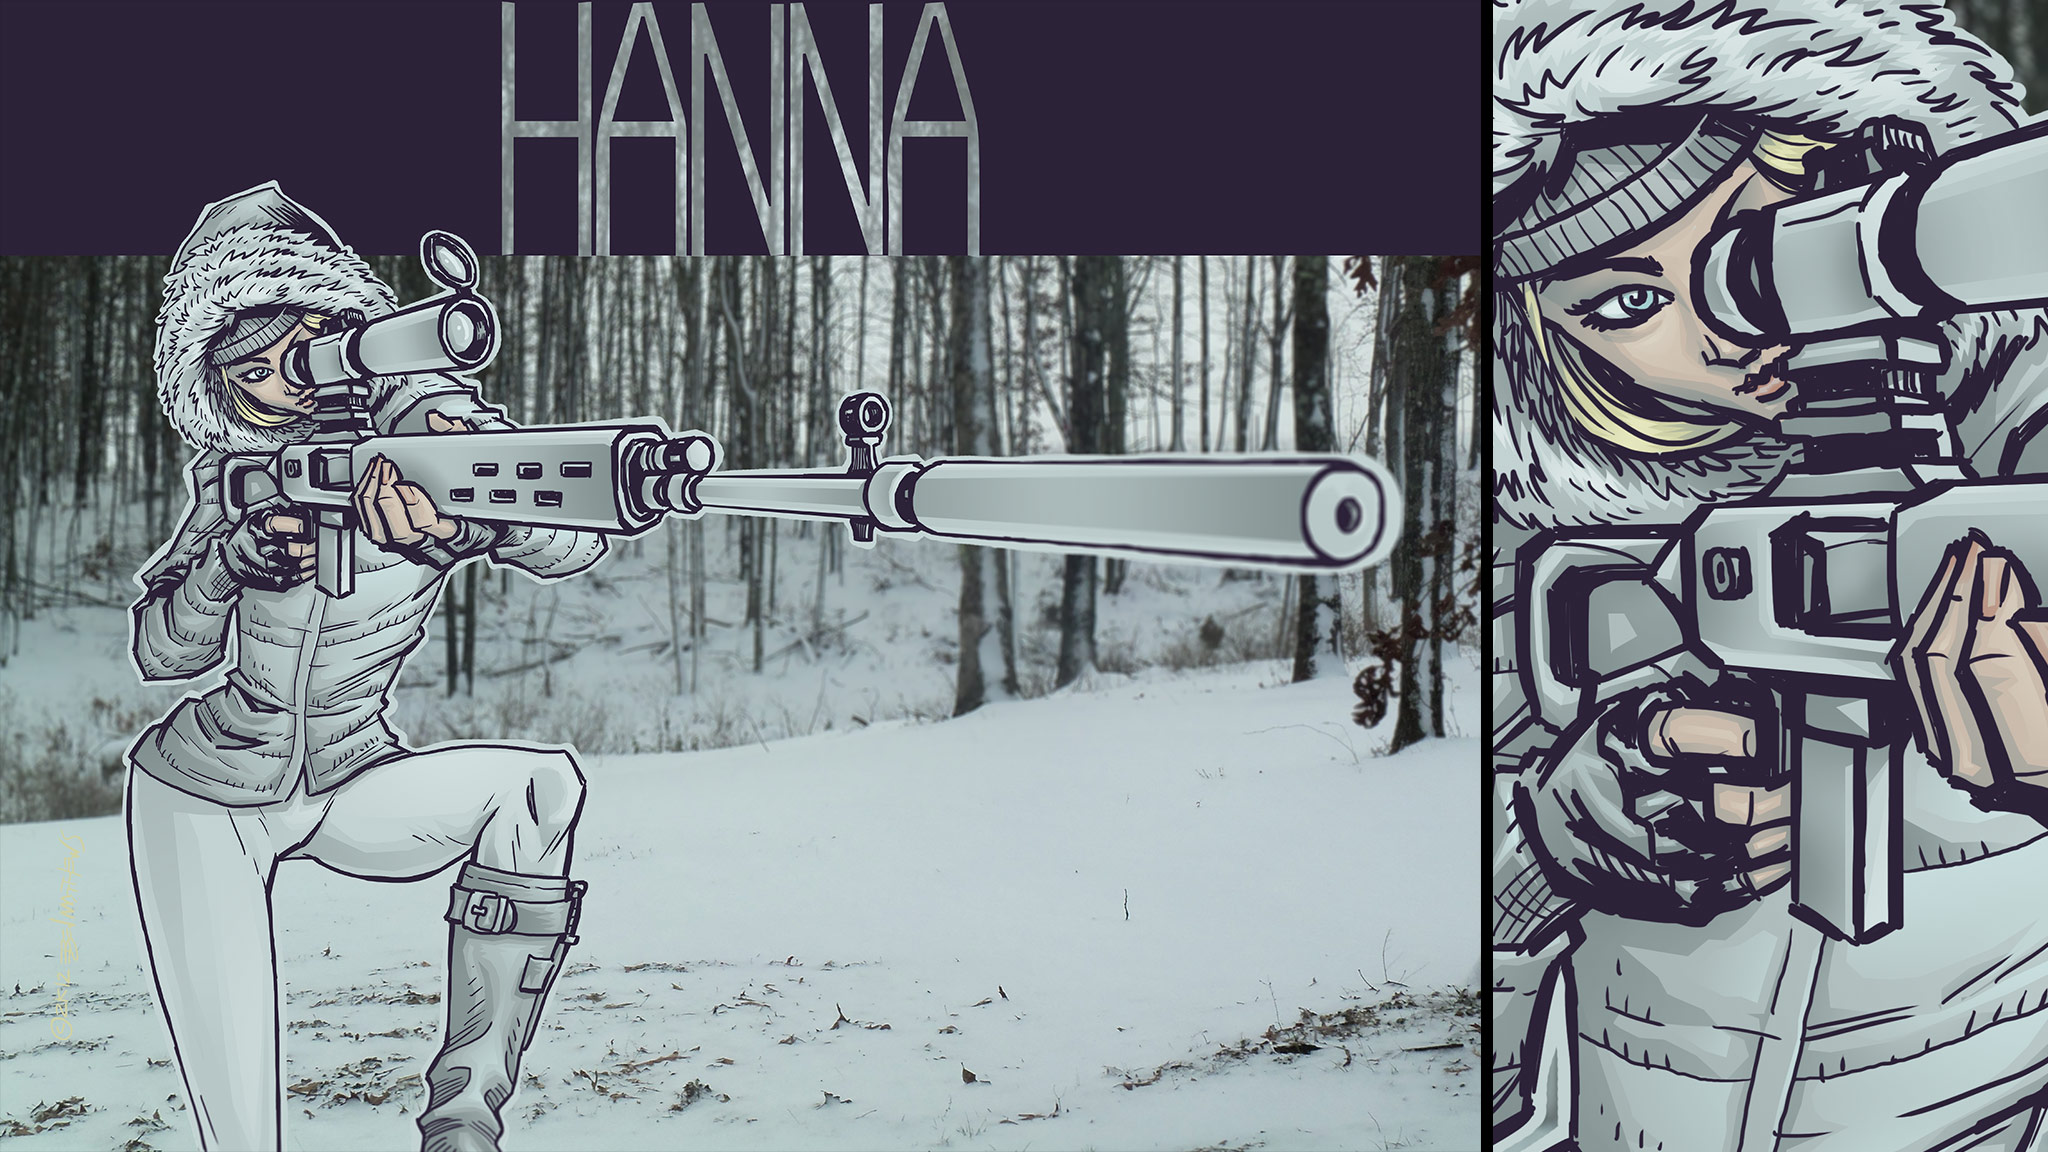 Illustration_Hanna.jpg